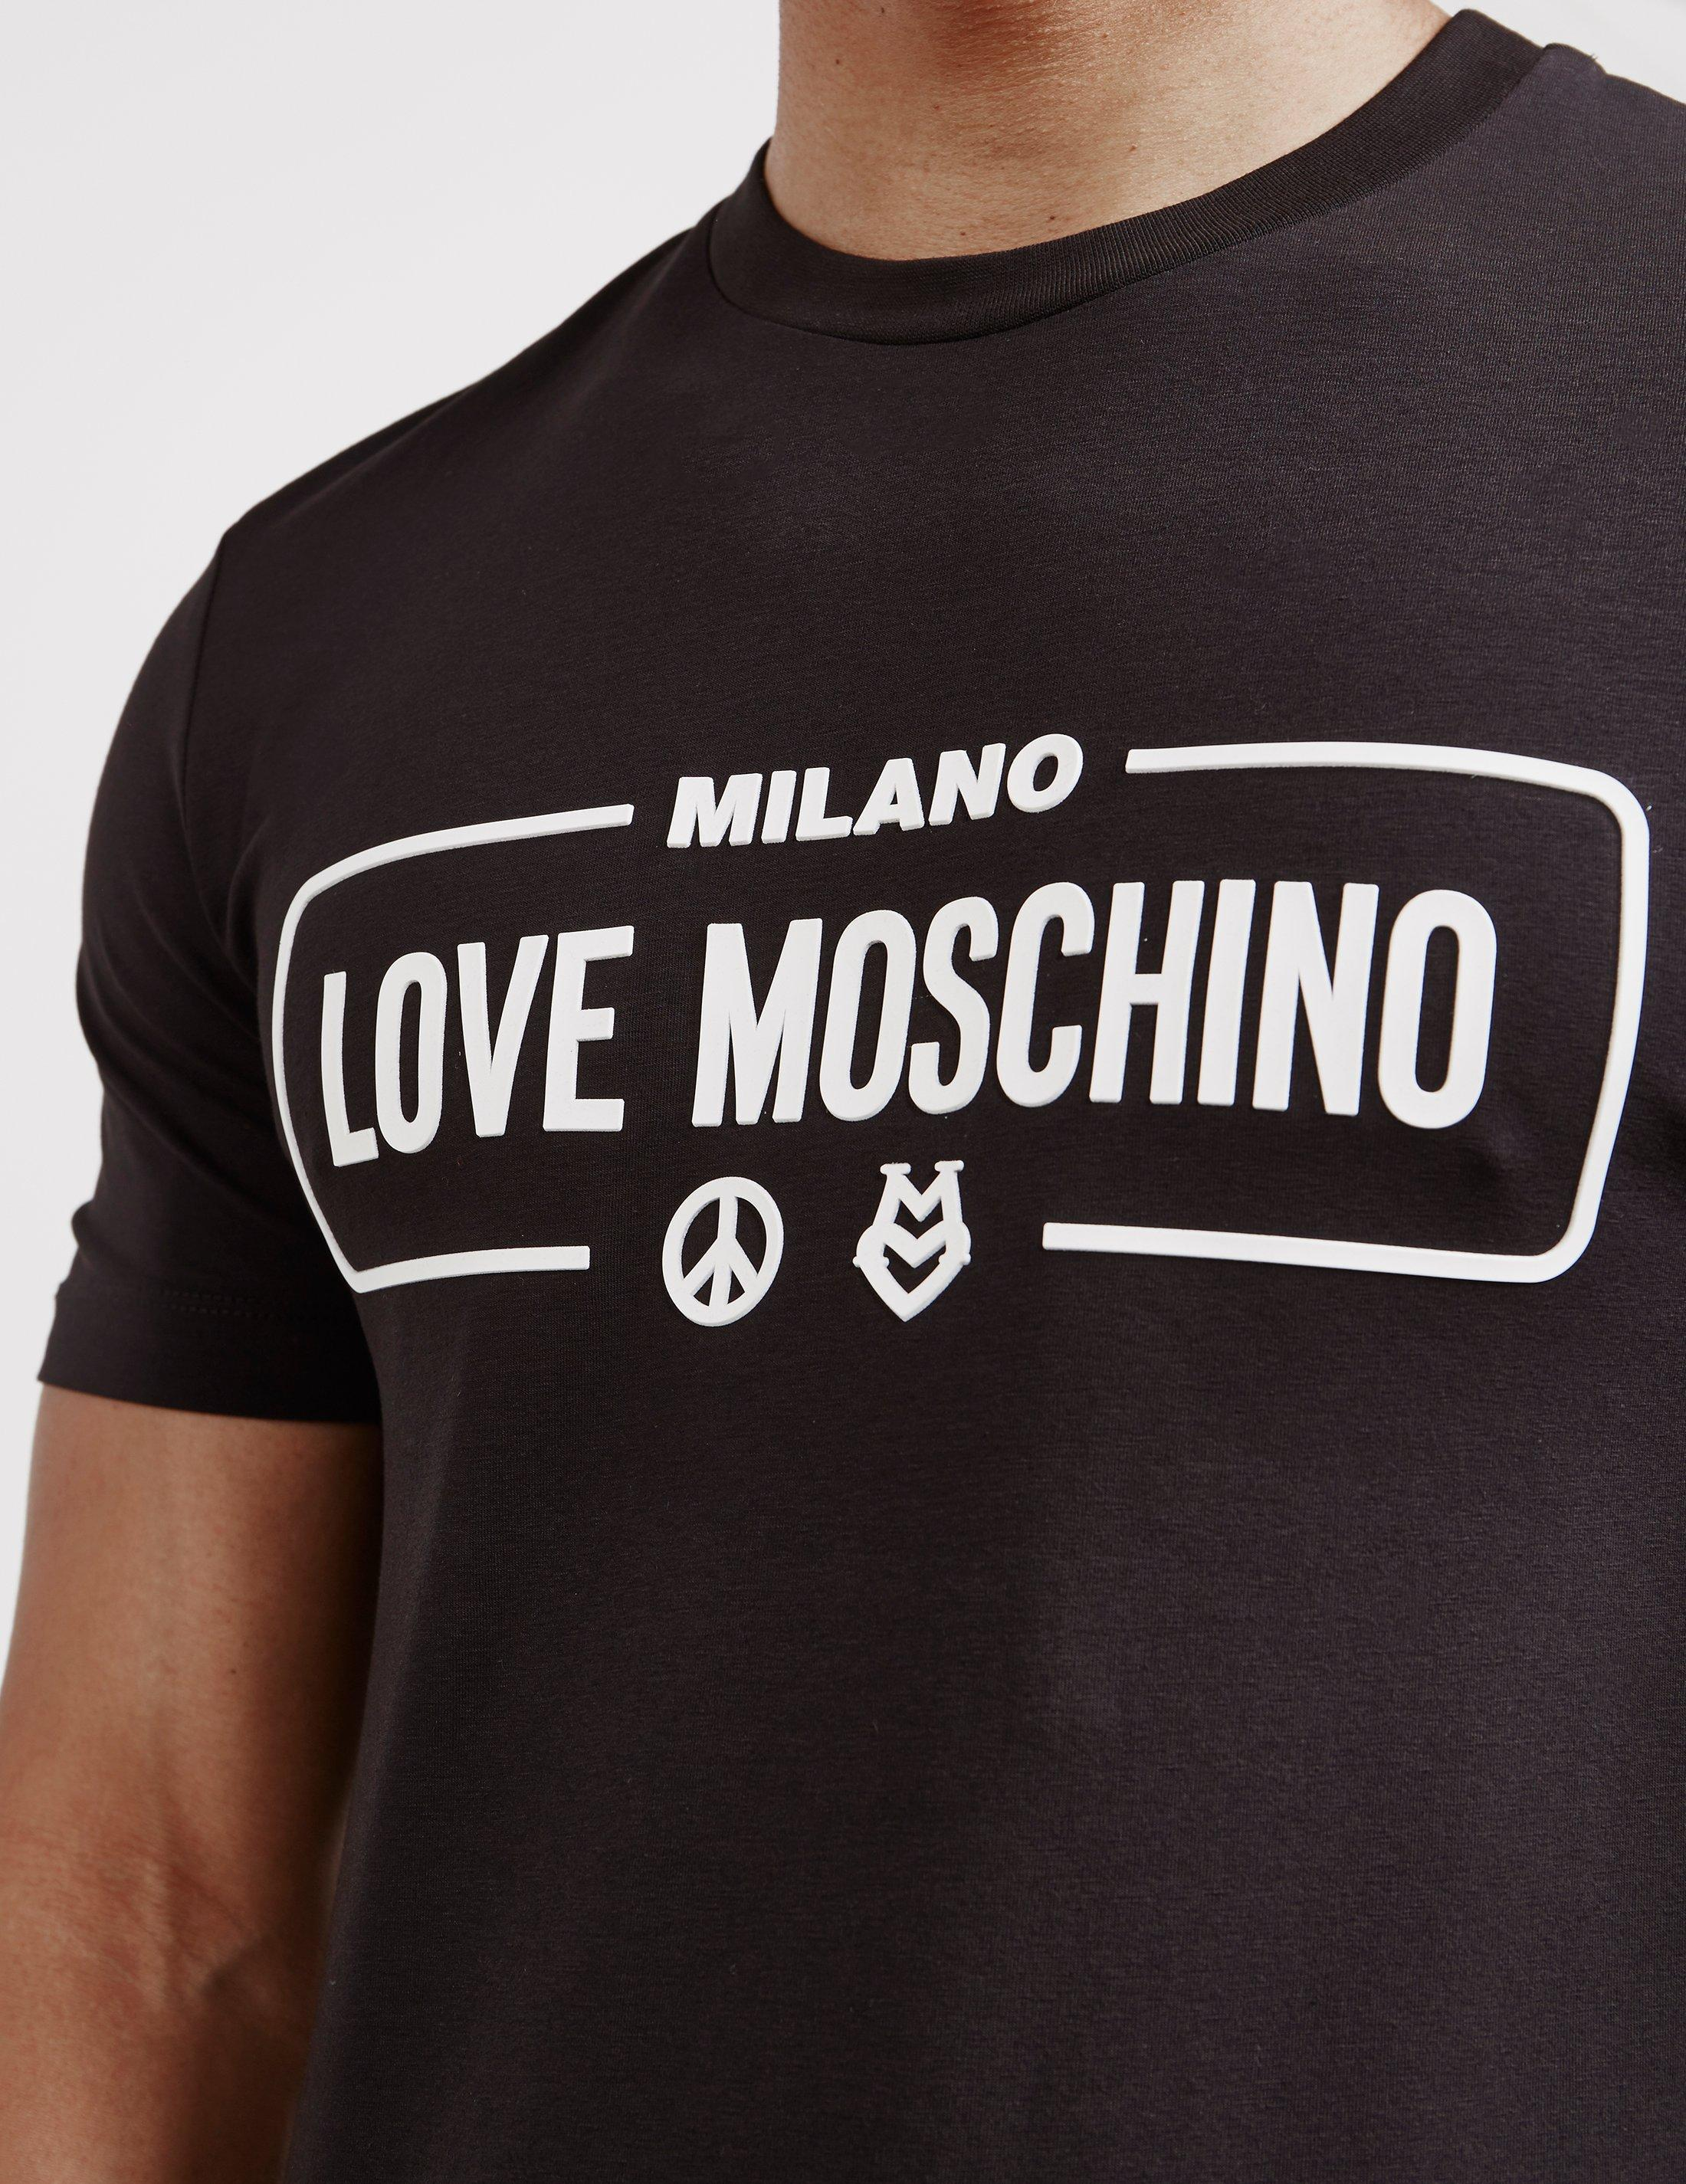 90c6fe25e Love Moschino Mens Milano Short Sleeve T-shirt Black in Black for ...